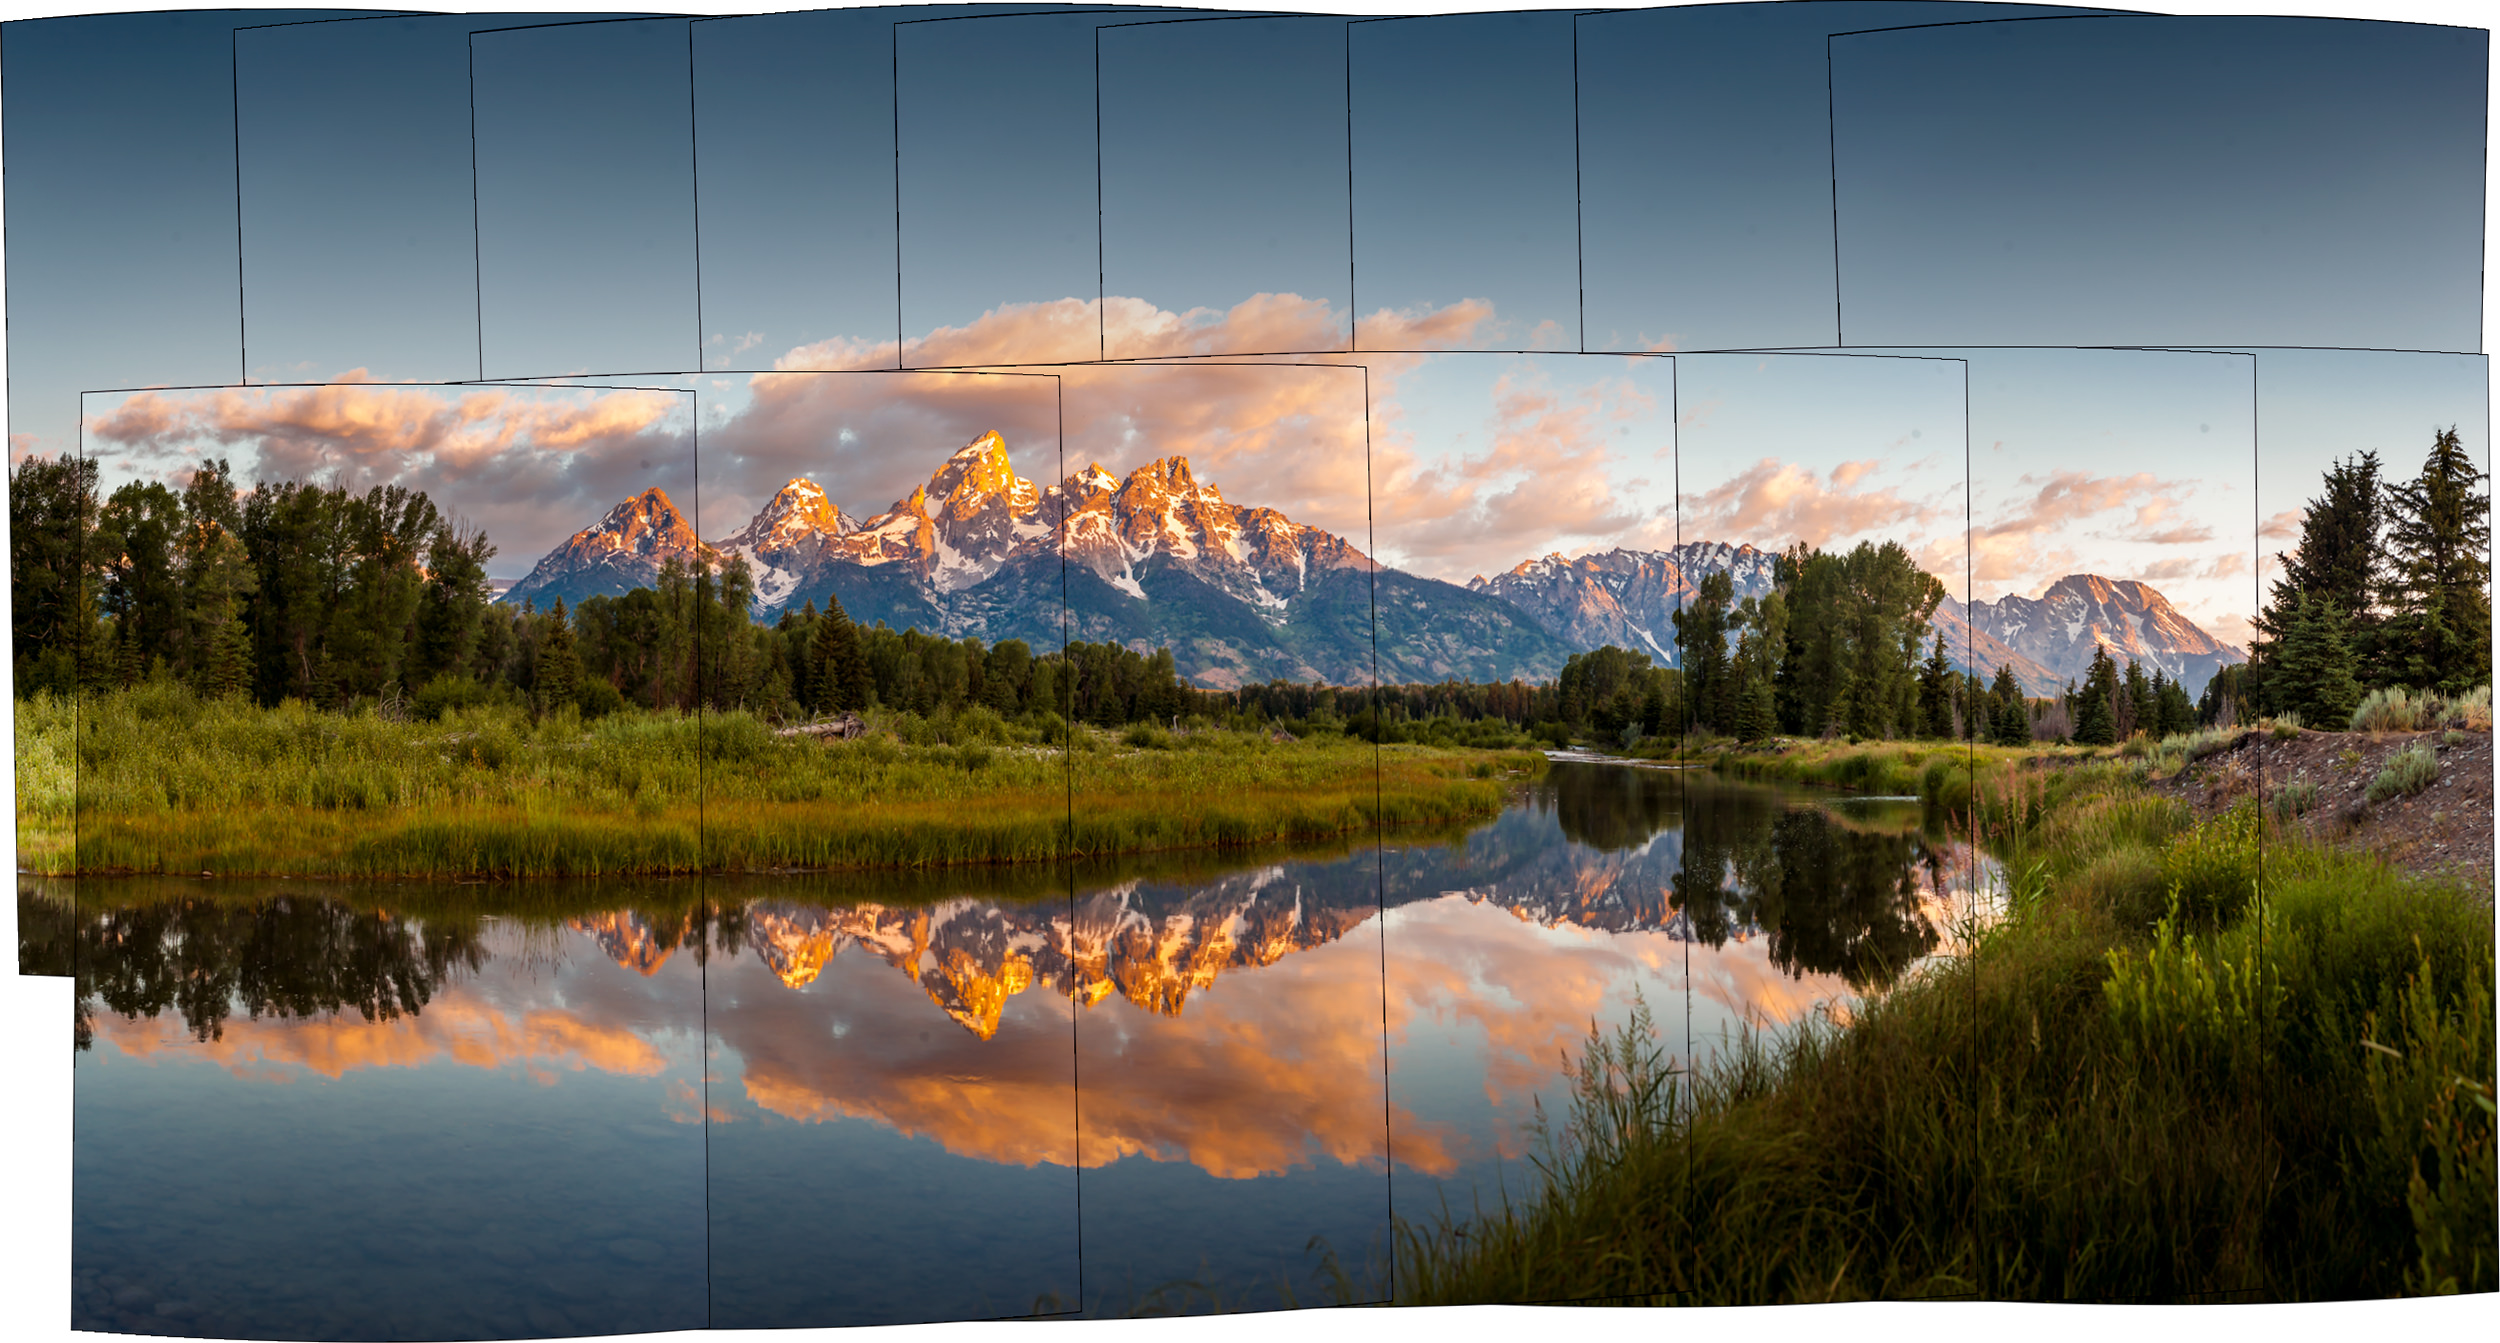 I scanned the scene with my zoom lens to grab 16 photos which were stitched into one large photo.